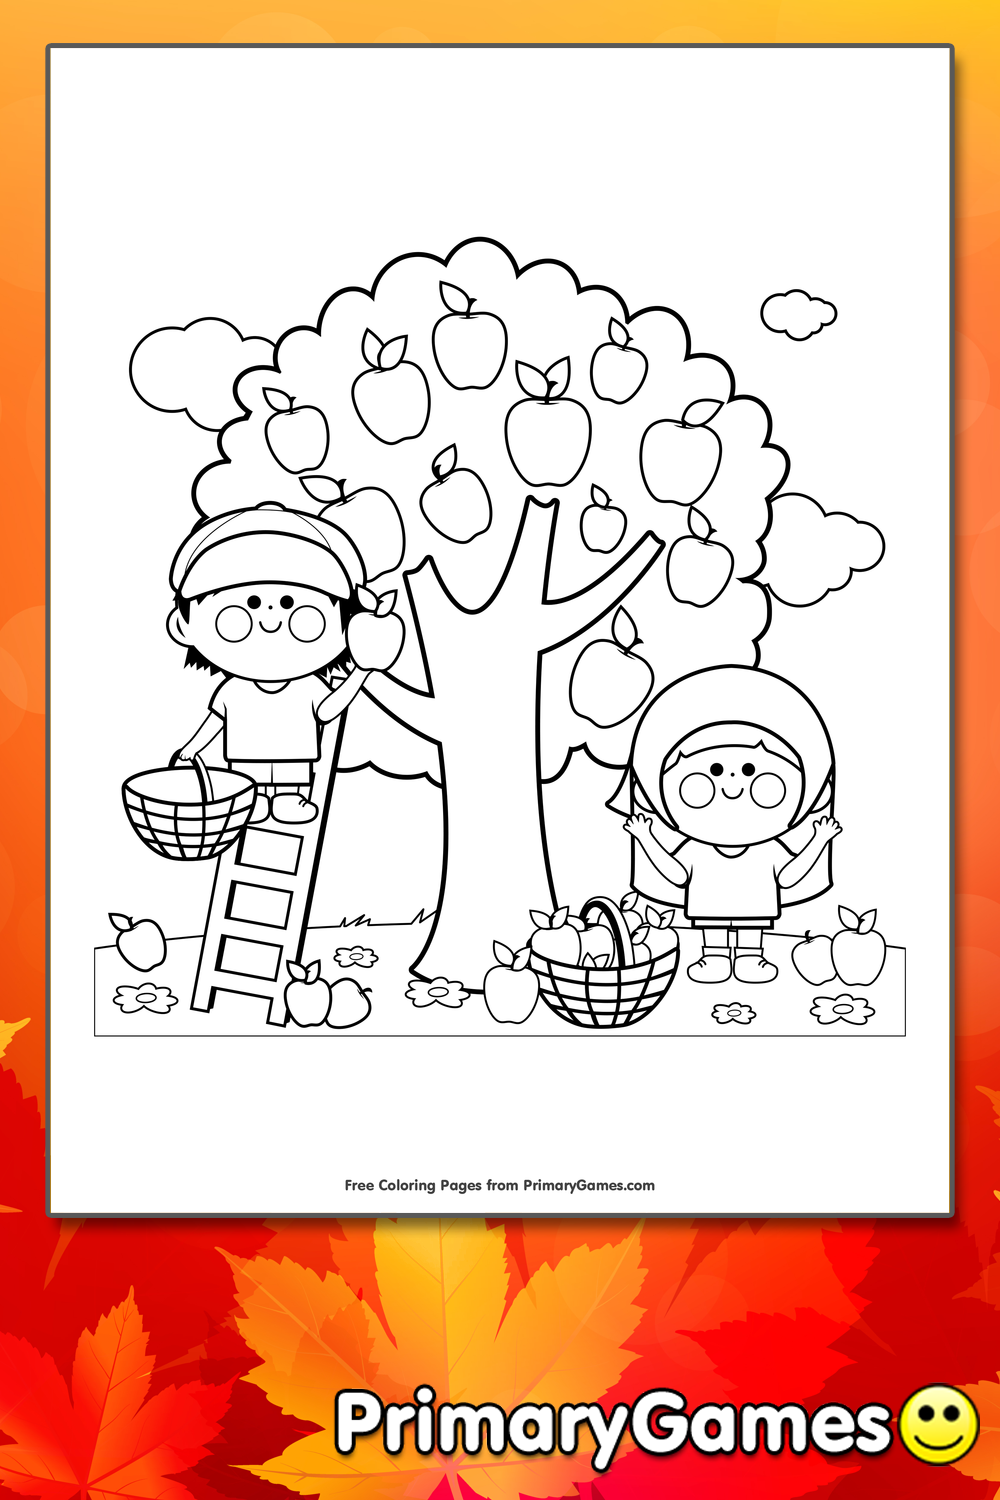 Children Picking Apples Coloring Page